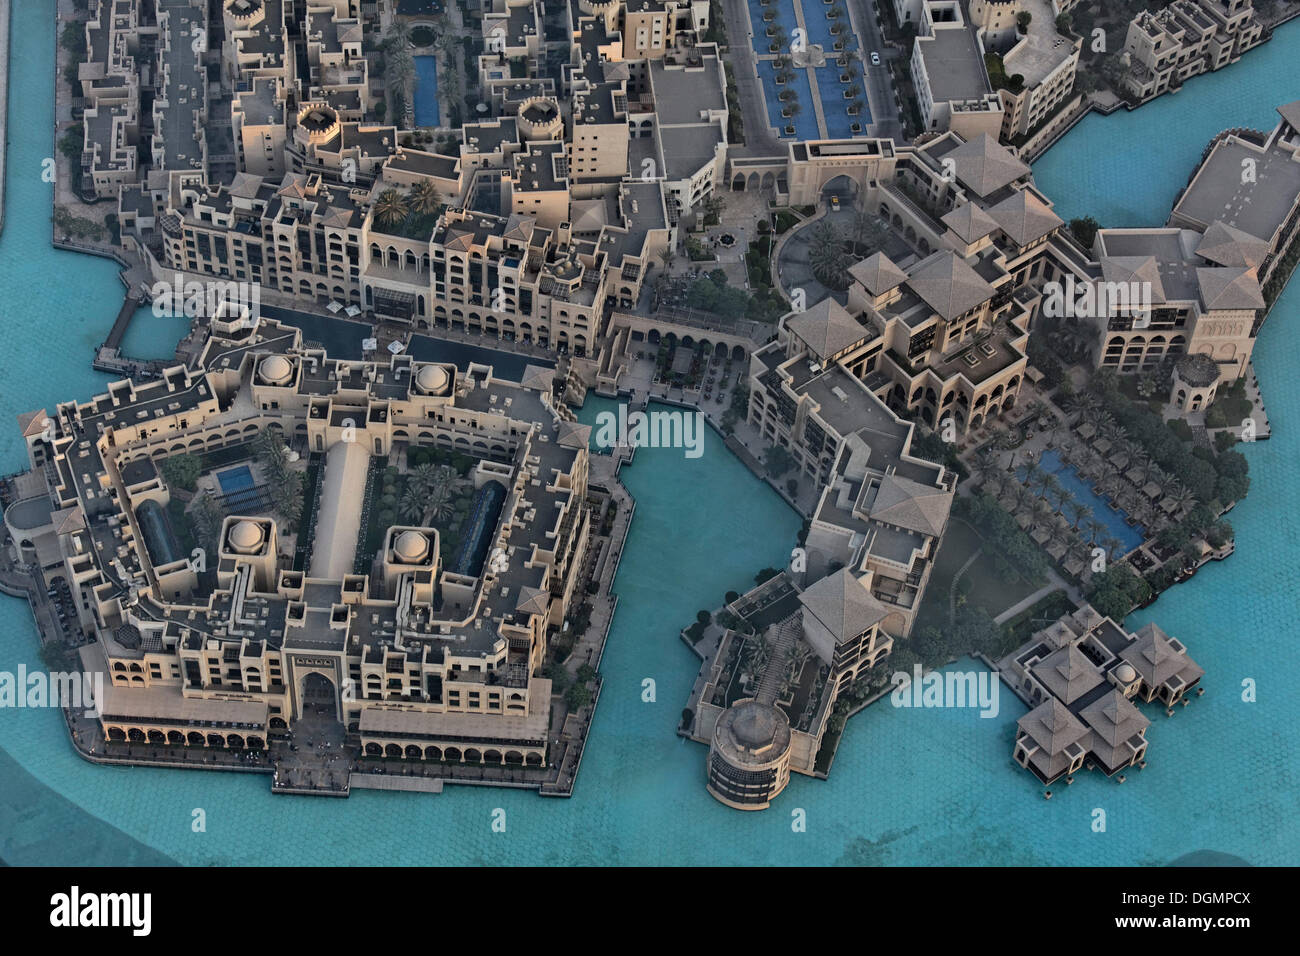 View from Burj Khalifa towards neighbourhoods built in the traditional style, Downtown Dubai, The Old Town, United Arab Emirates - Stock Image